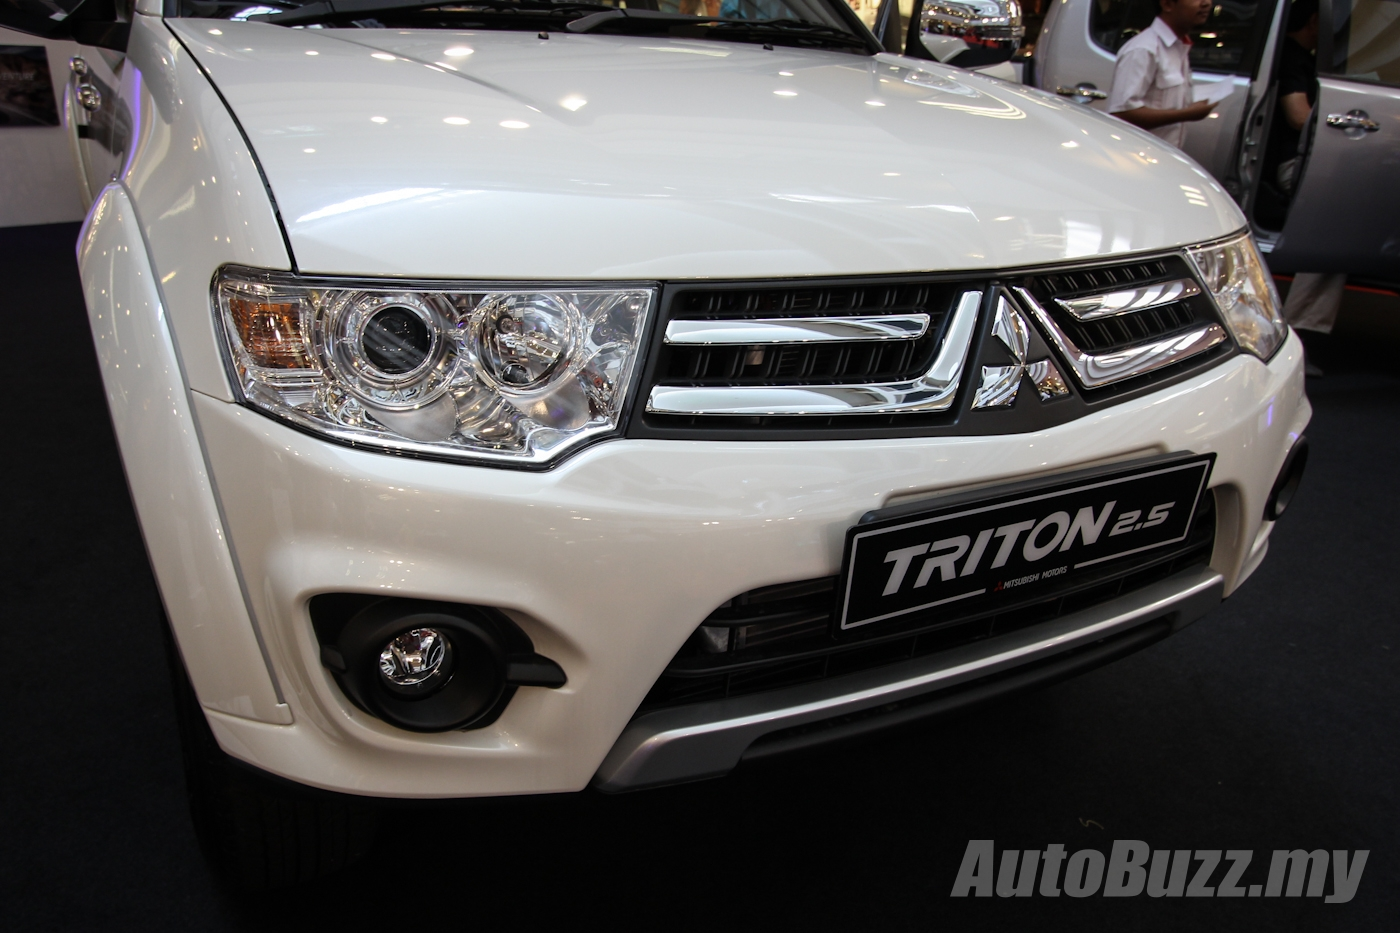 Mitsubishi Triton Gets A New Look In Malaysia Vgt Gs